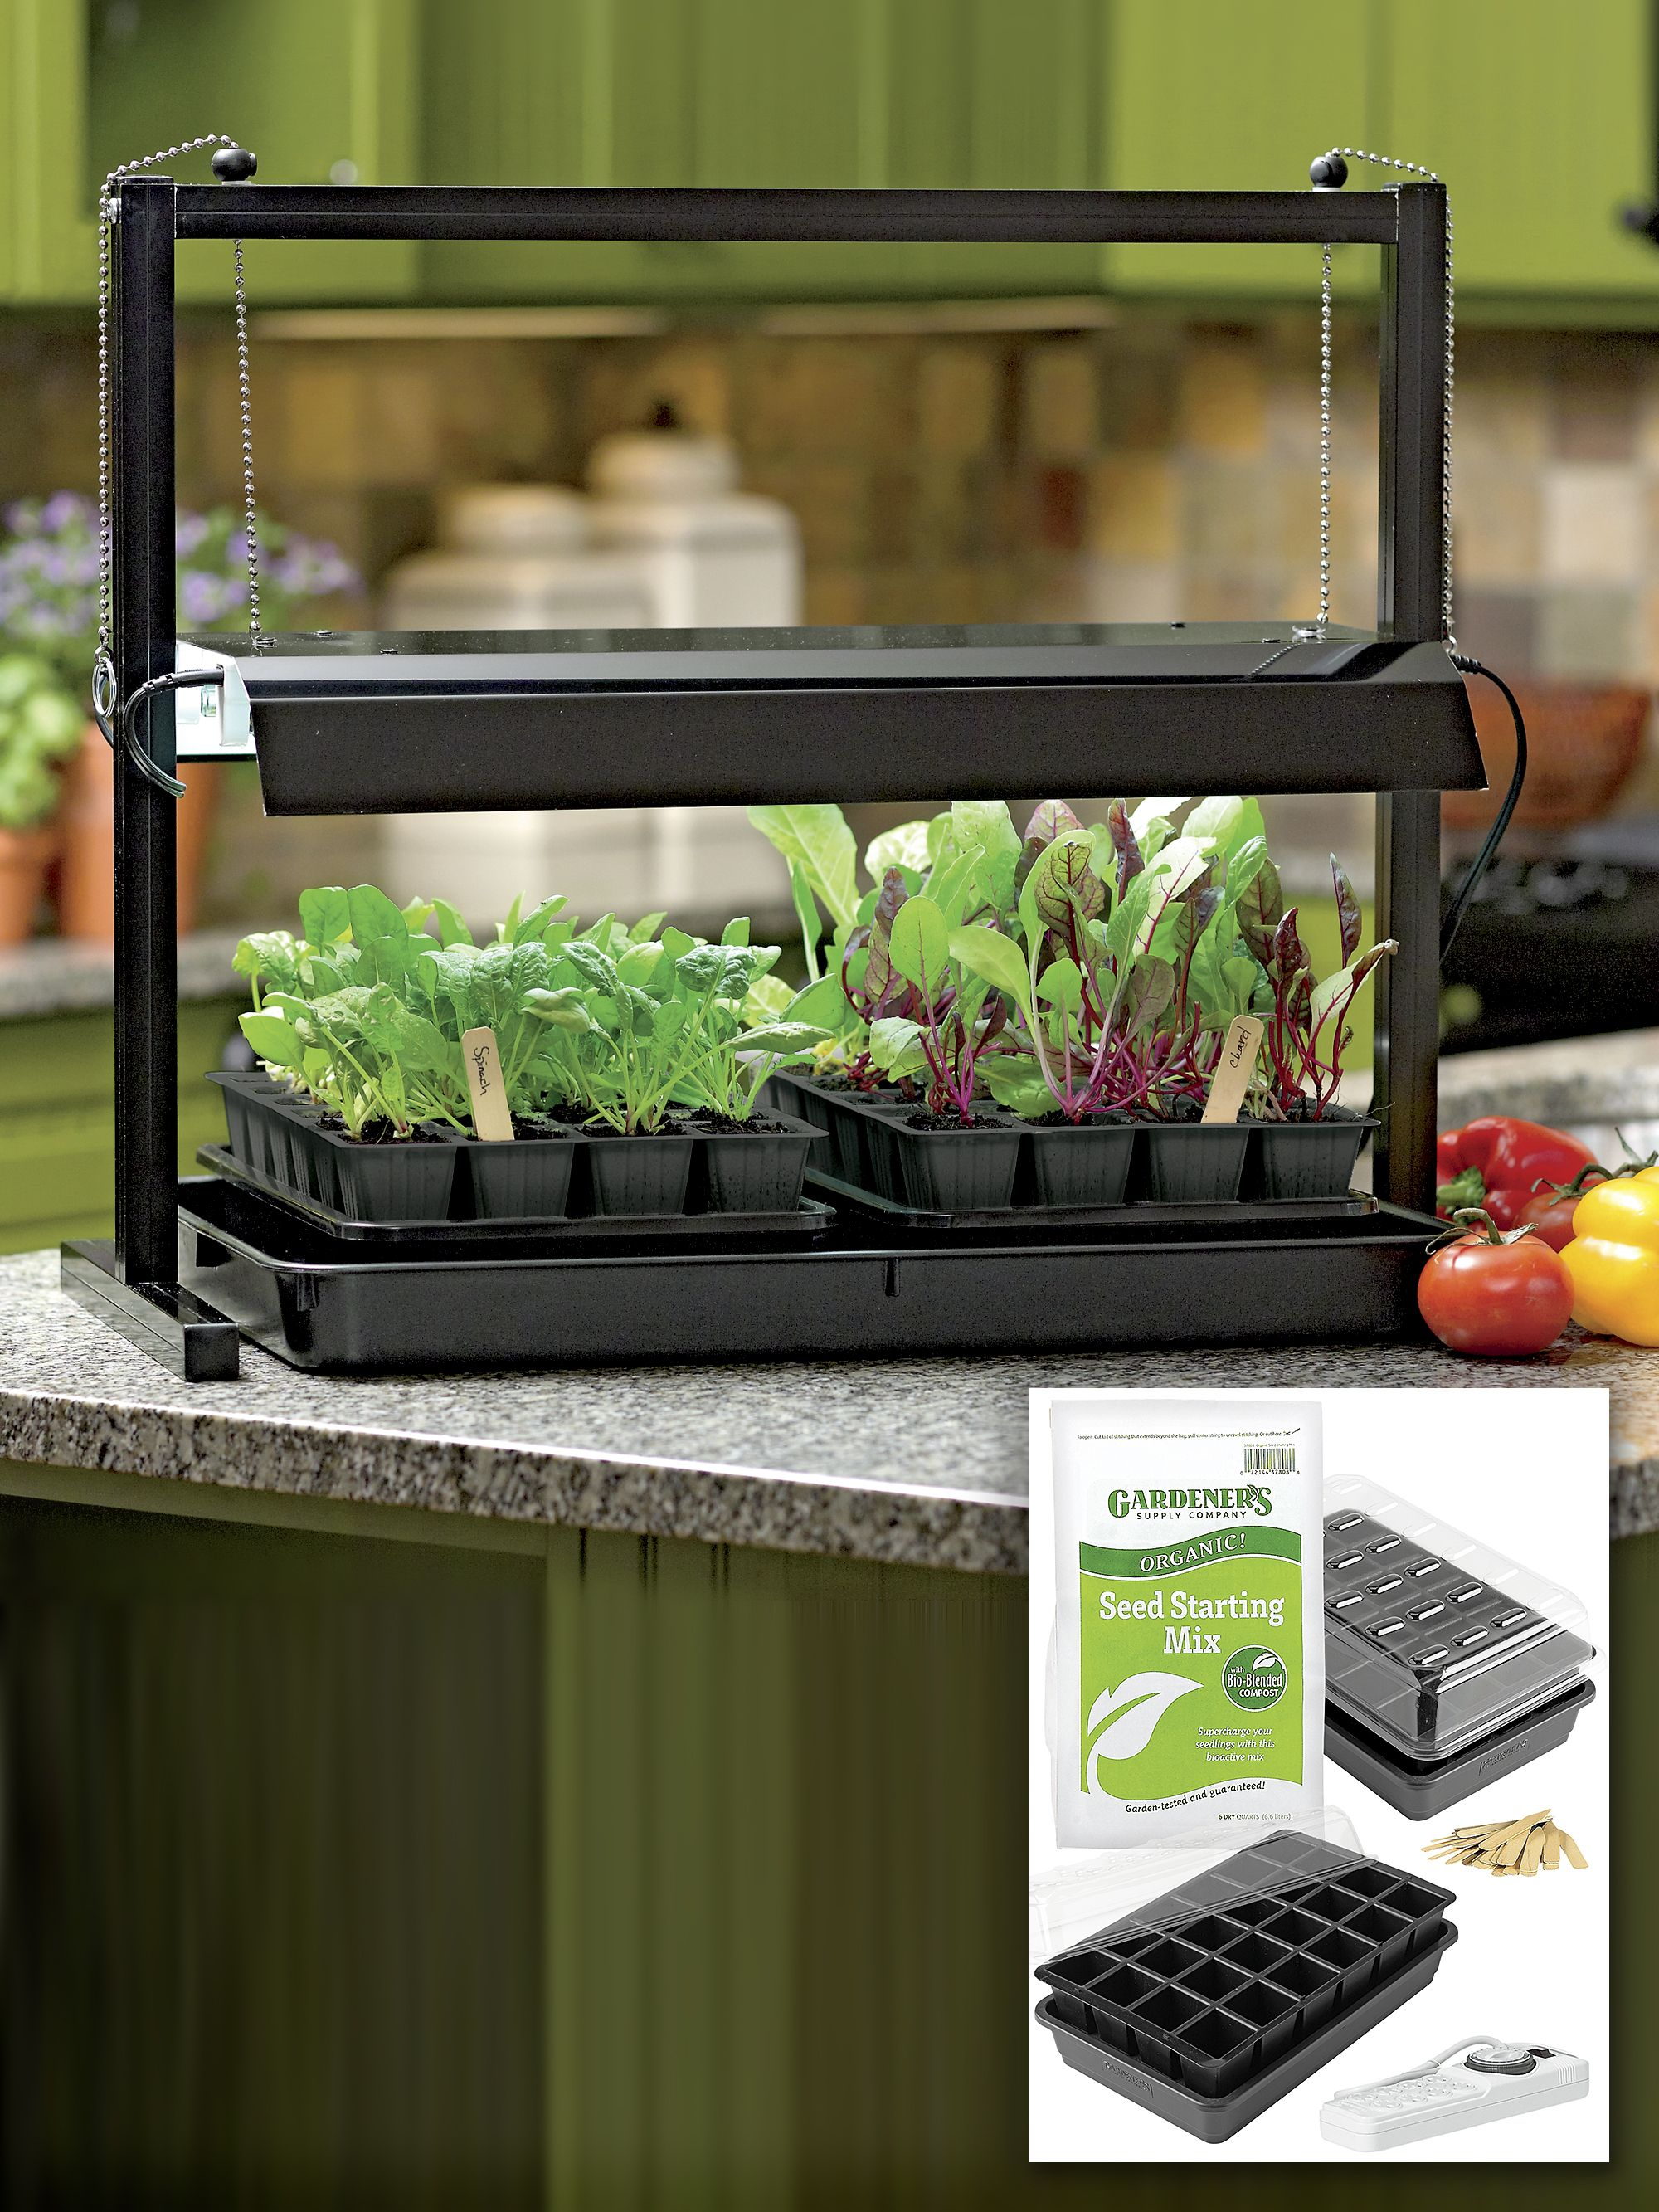 Small Grow Lights And Tabletop Garden Starter Kit Seed Starting